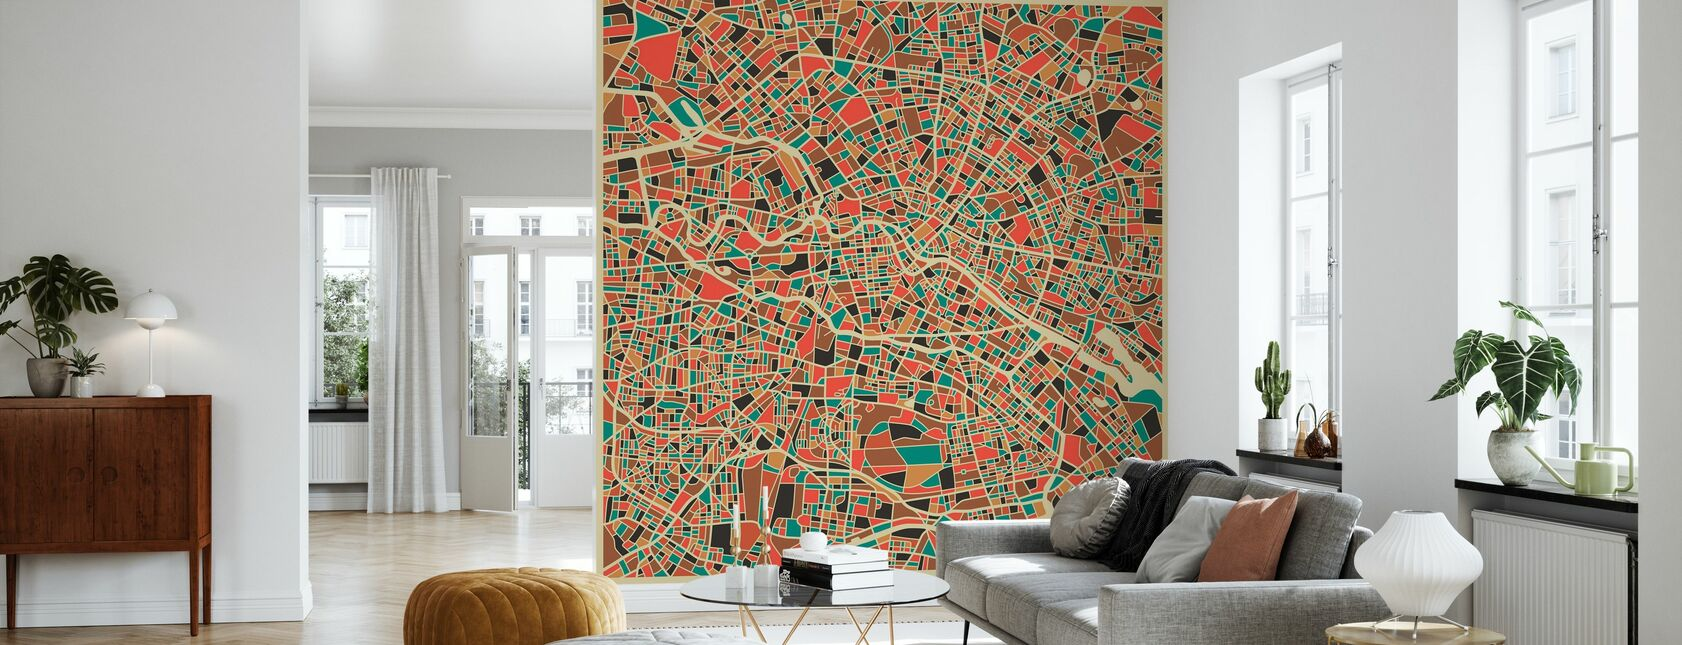 Multicolor Map - Berlin - Wallpaper - Living Room